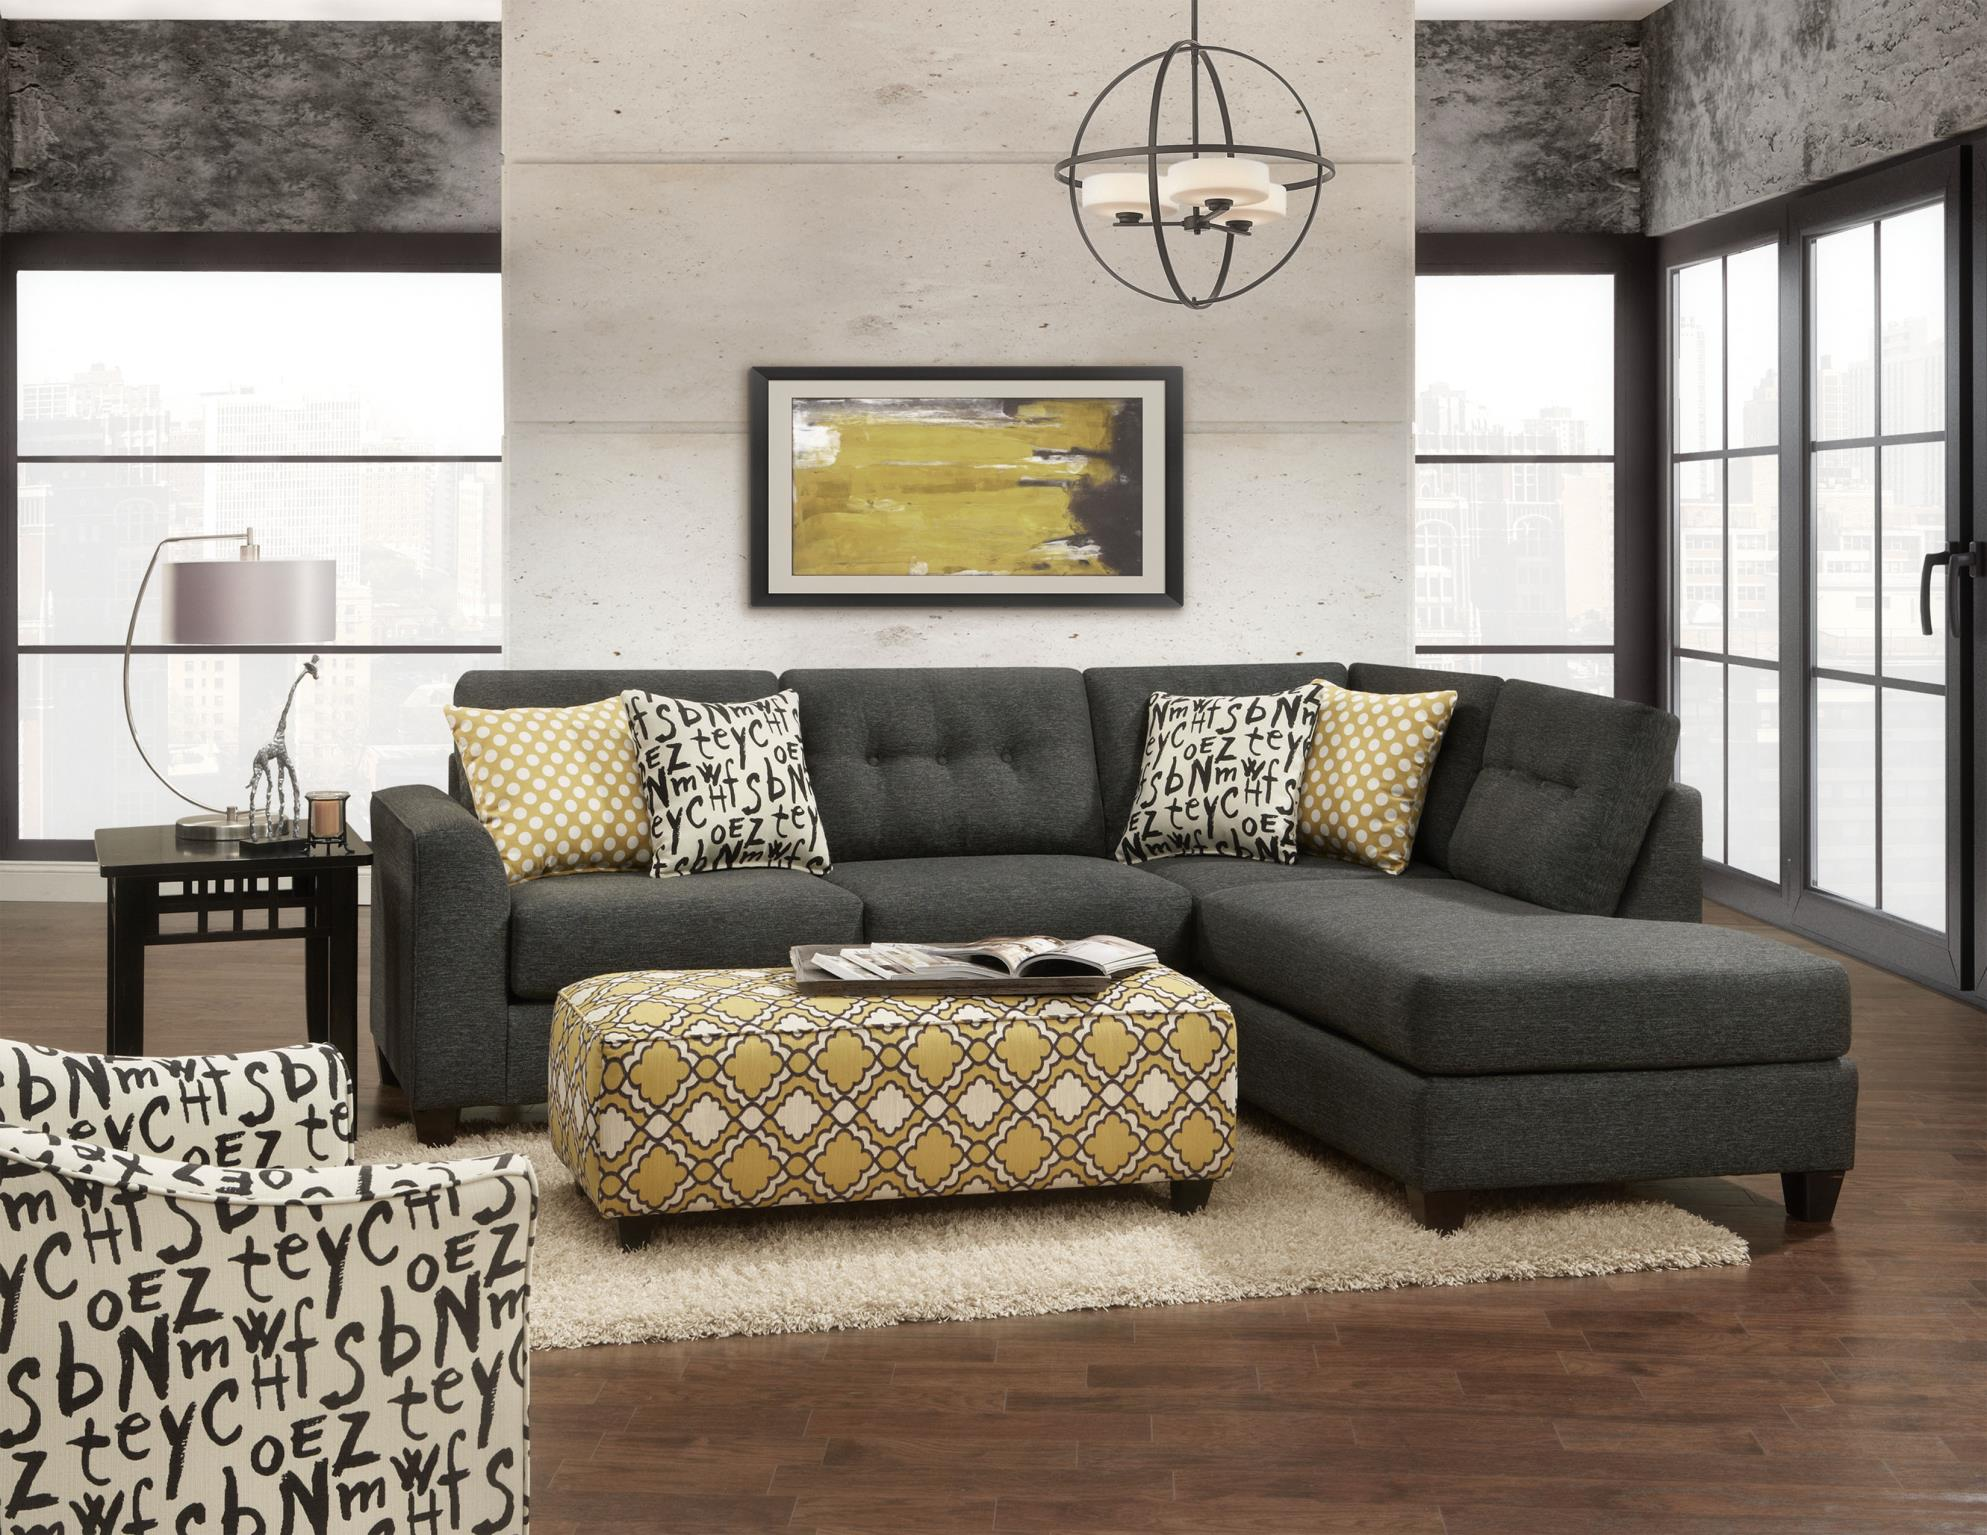 Buffington 1515 16 max ebony meyers furniture for Lsf home designs furniture